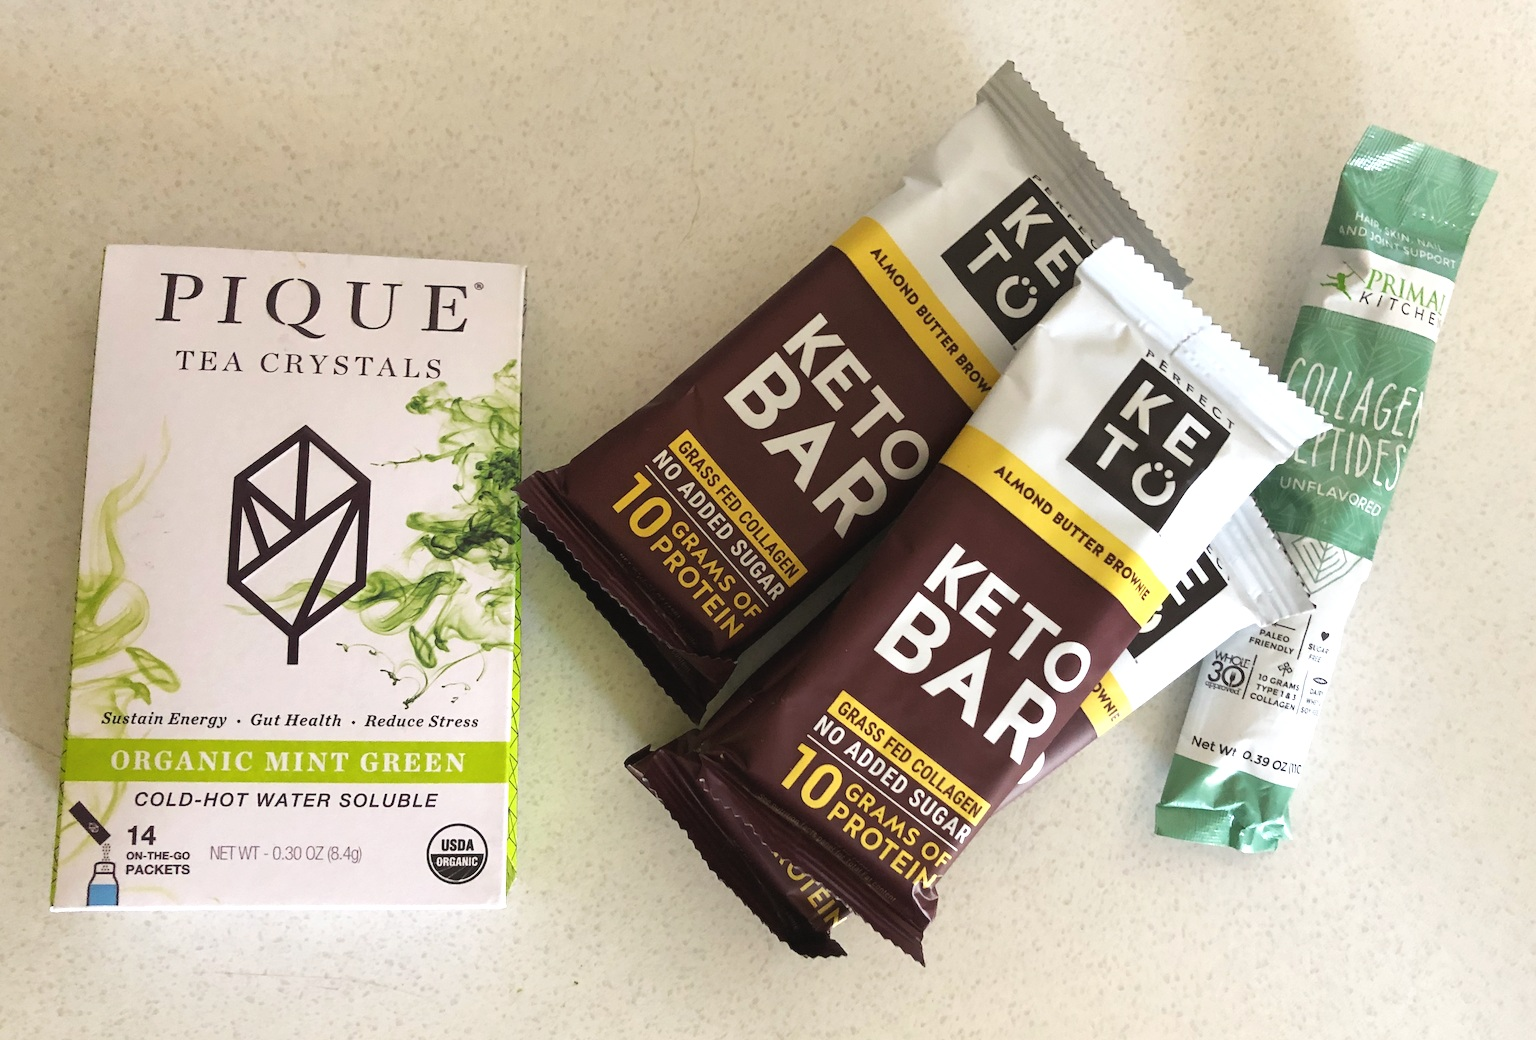 Keto Bars from Perfect Keto, Collagen, Organic Tea from Pique Tea